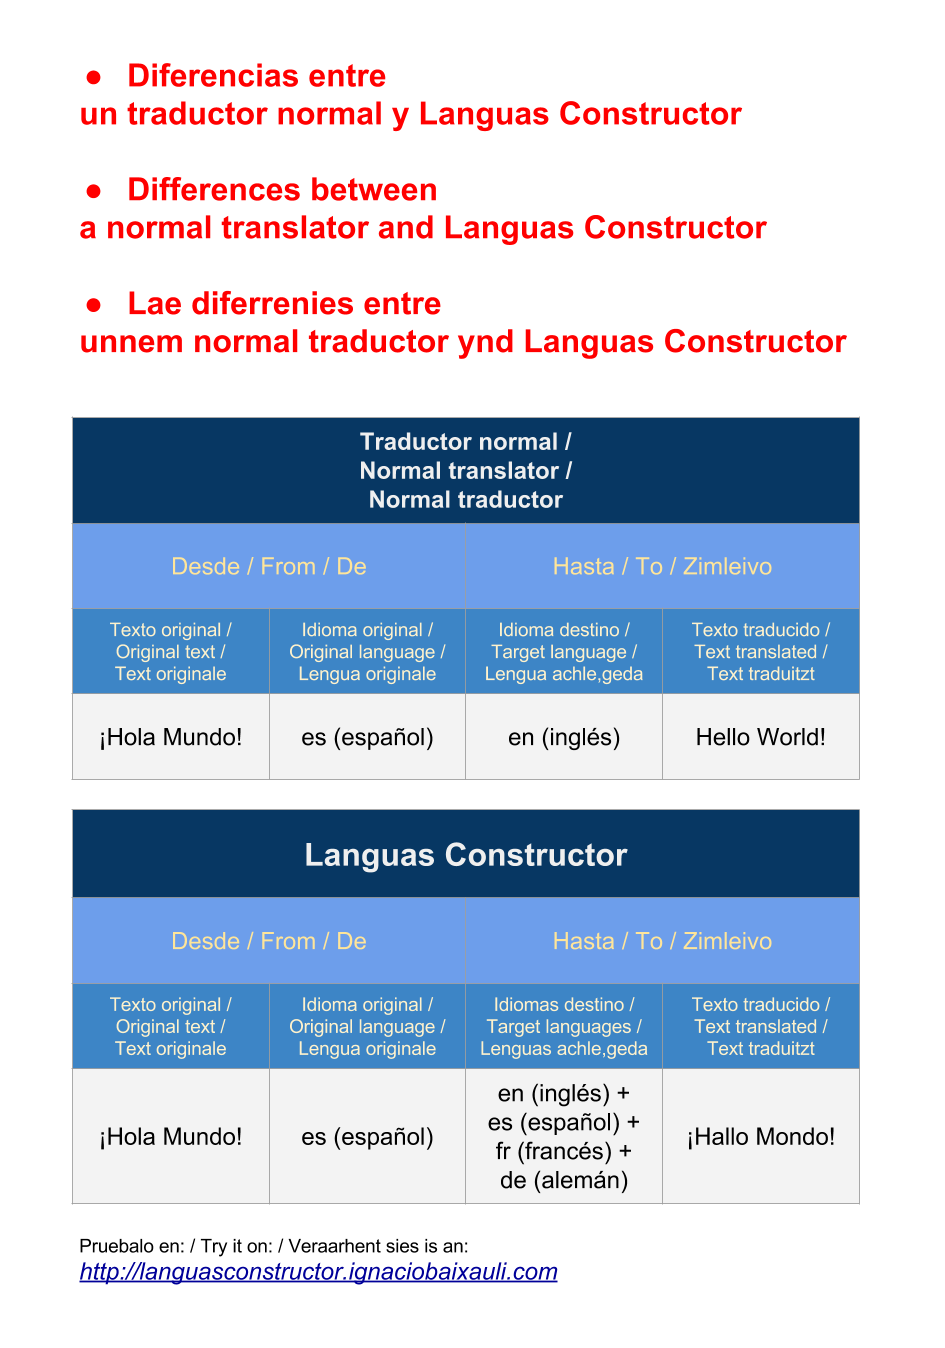 dIFERENCIA ENTRE UN TRADUCTOR NORMAL Y lANGUAS cONSTRUCTOR